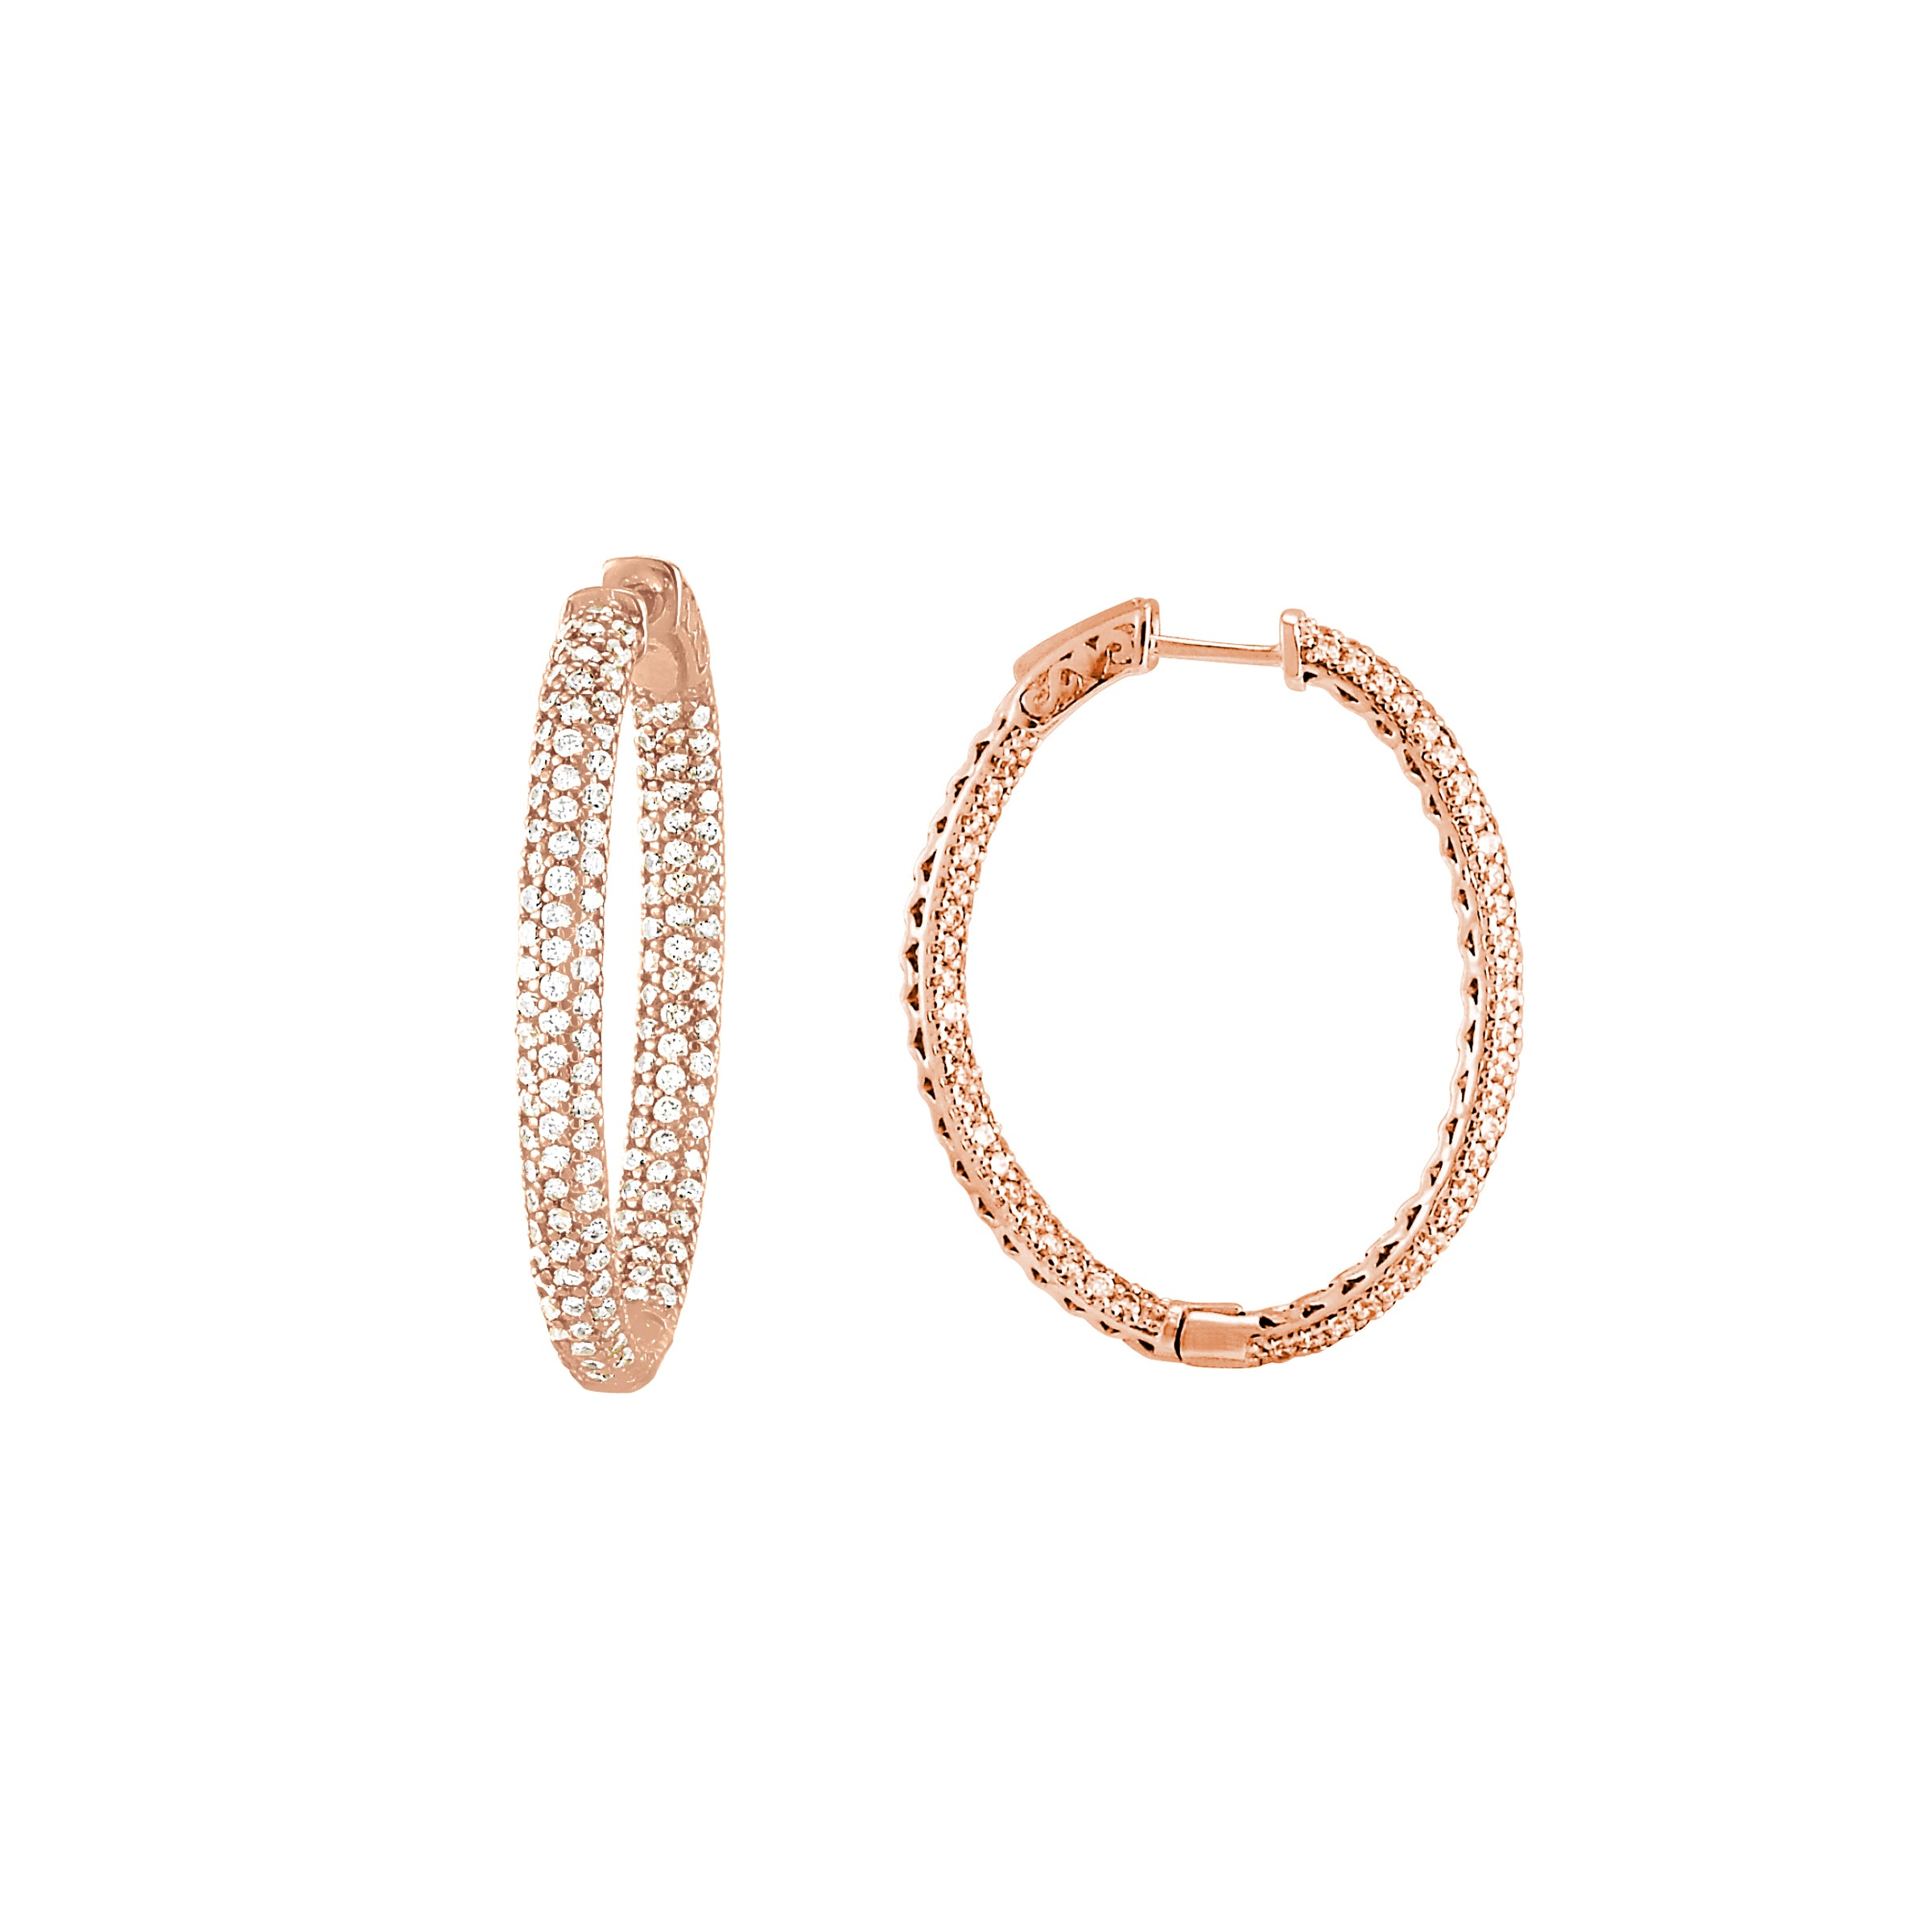 Pavé Set CZ Oval Hoop Earrings, Sterling Silver with Rose Gold Plating